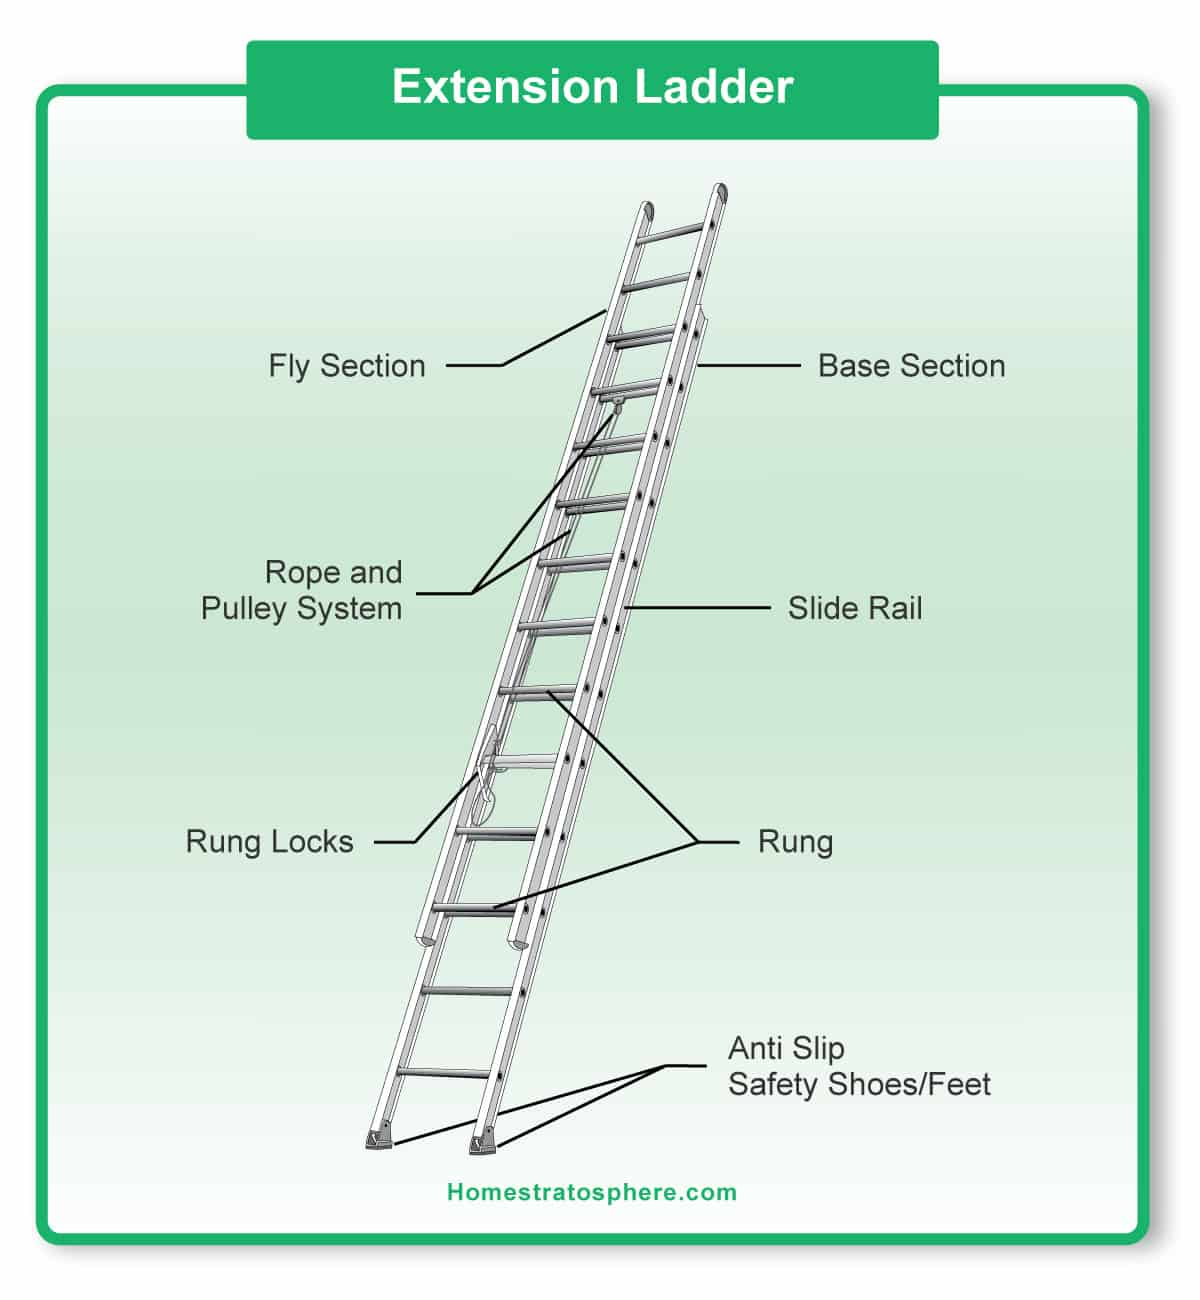 hight resolution of parts of a ladder diagrams for step and extension ladders diagram showing the parts